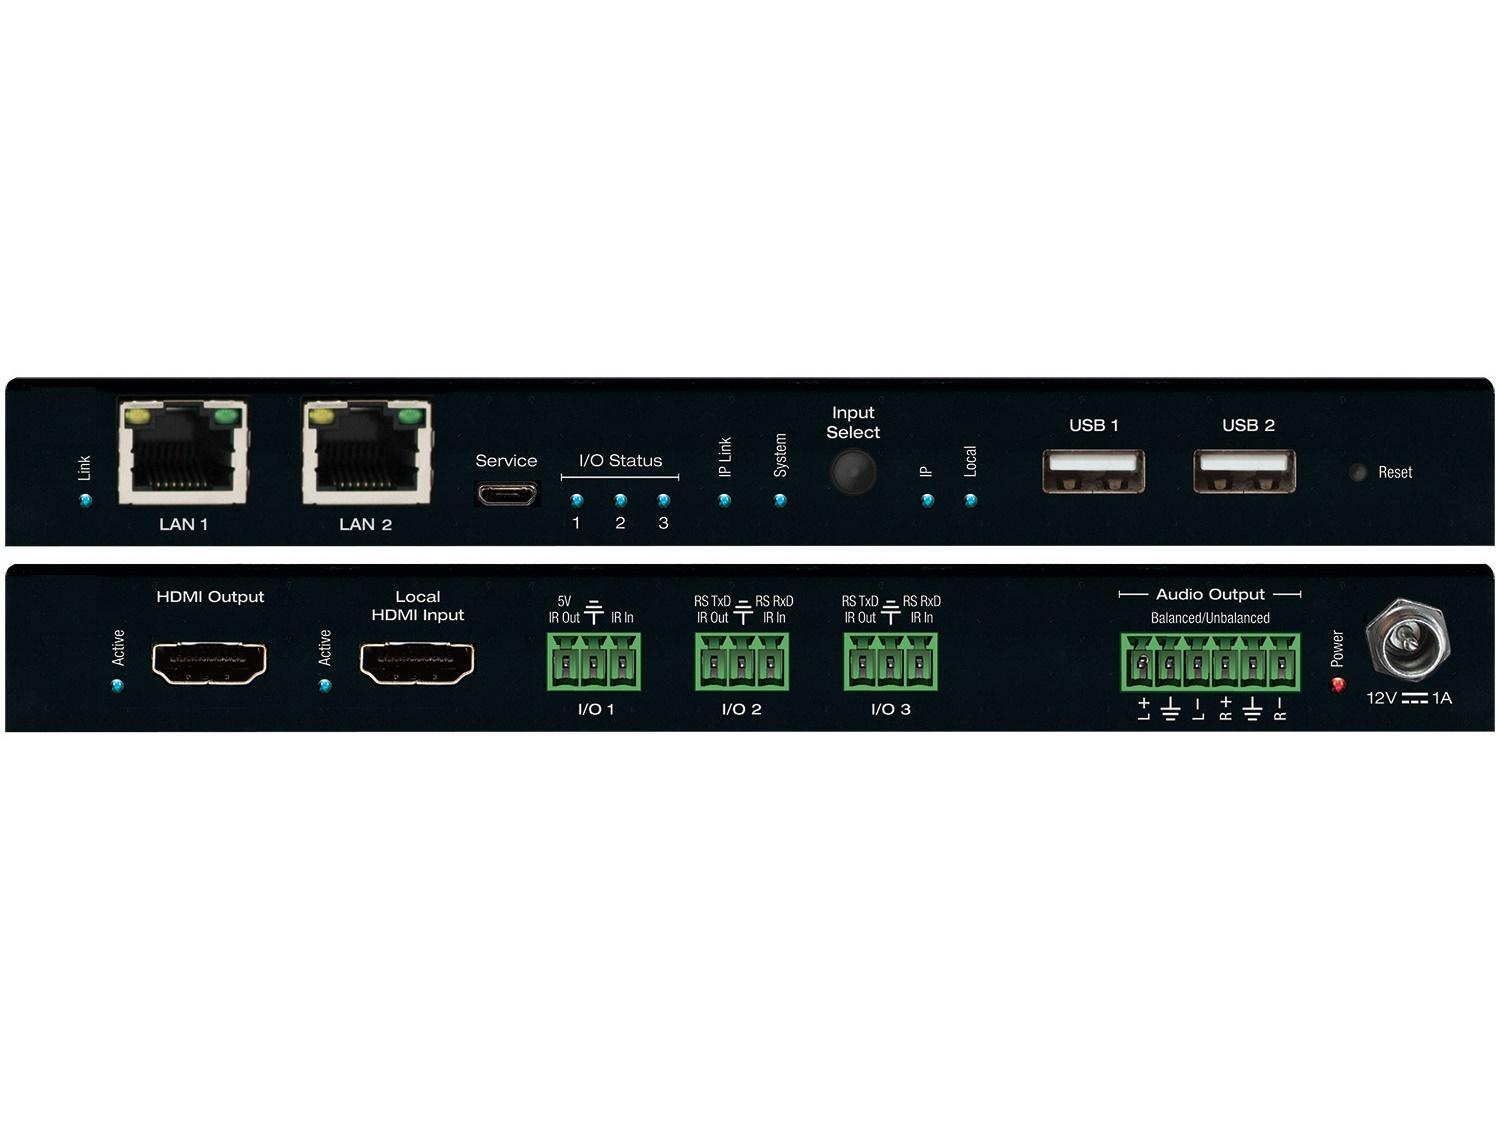 Key Digital KD-IP922DEC Enterprise AV over IP Decoder/4K/2 PoE ports LAN Switch/HDMI/Audio De-Embedding/Video Wall Processing/KVM/USB